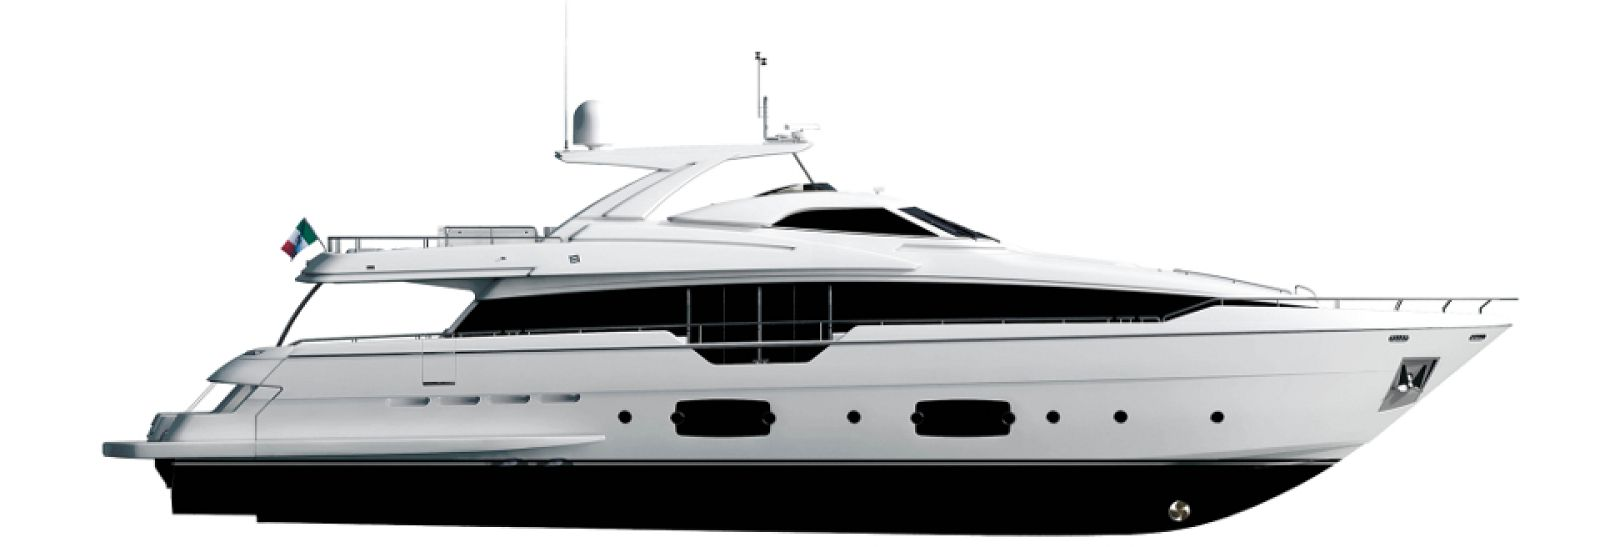 Ferretti Yachts 960 Layout - New Luxury Superyacht for Sale >